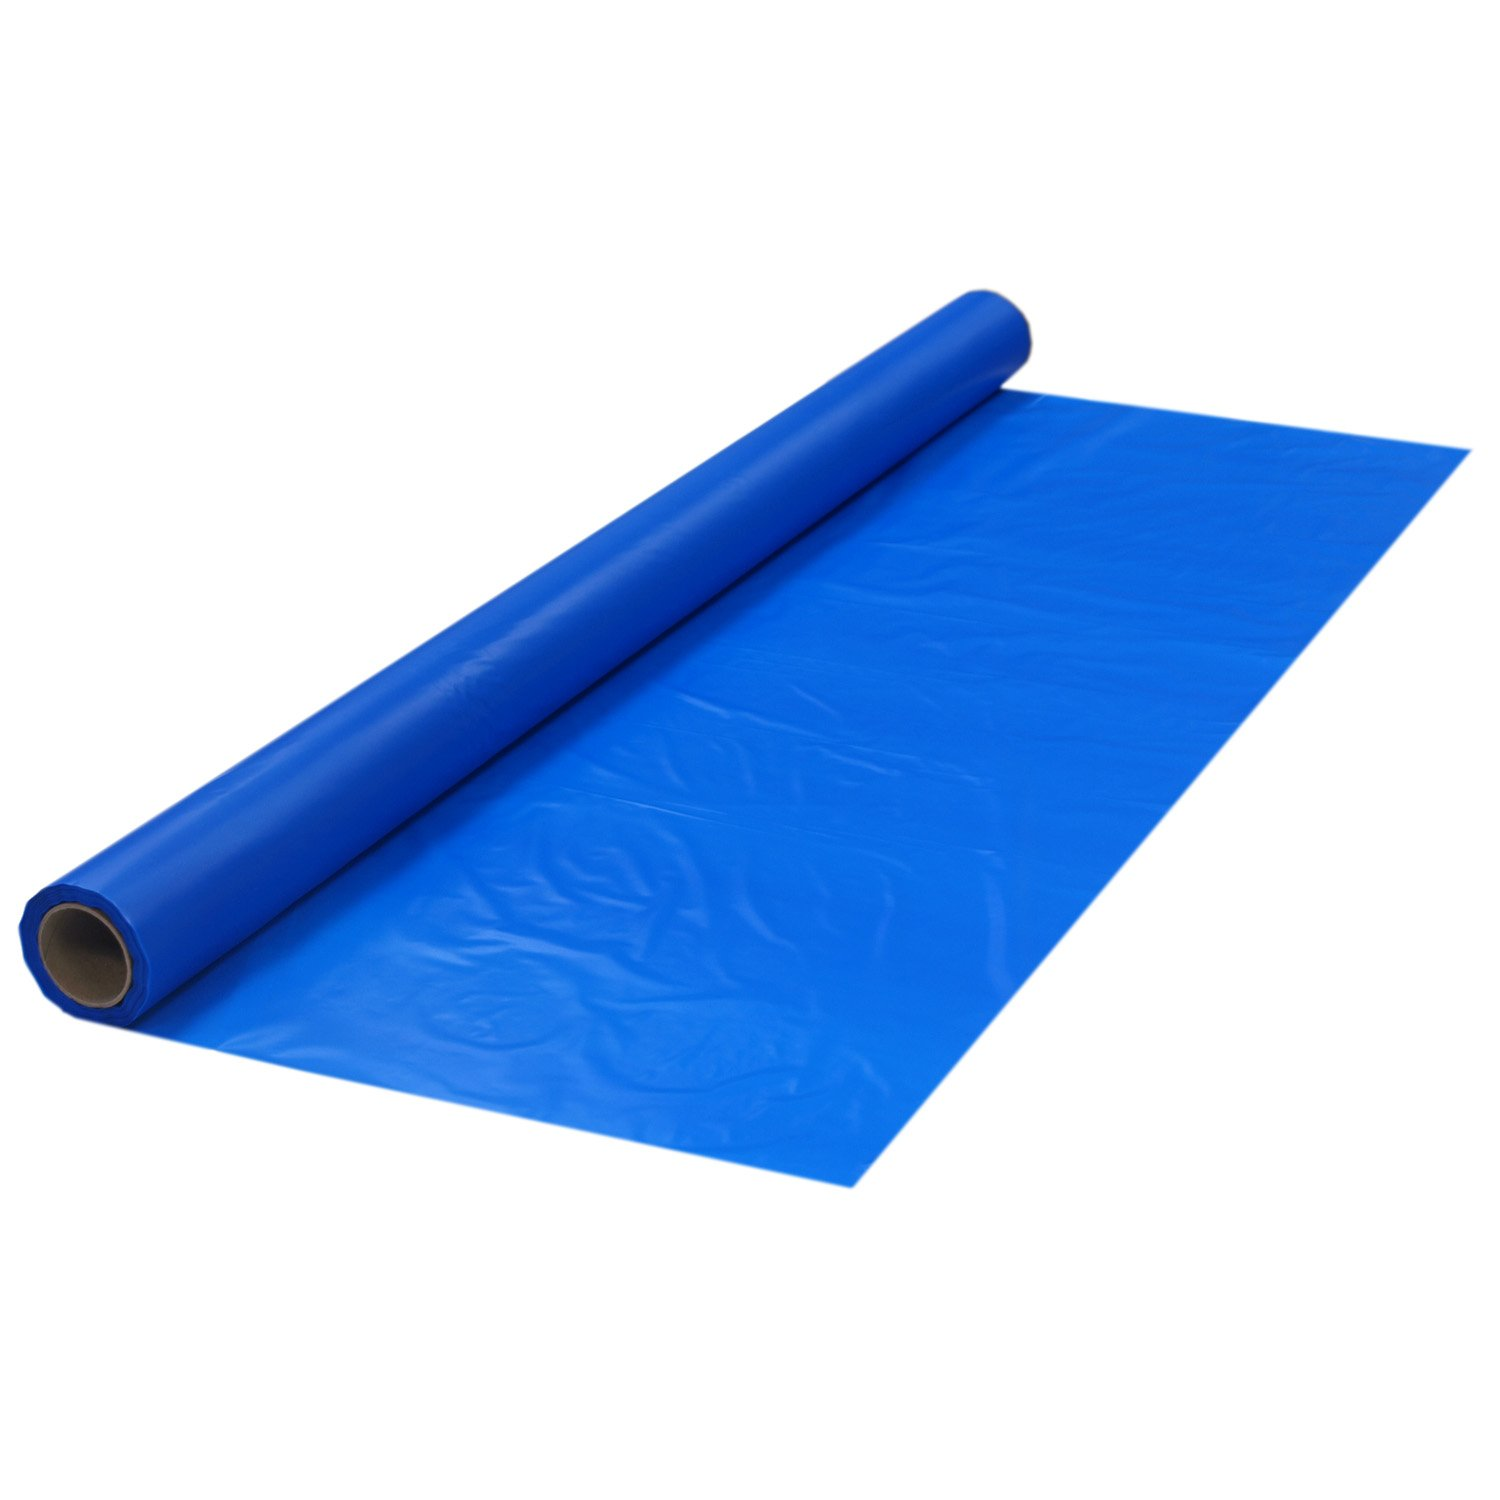 Party Essentials Plastic Banquet Table Roll Available in 27 Colors, 40'' x 100', Royal Blue